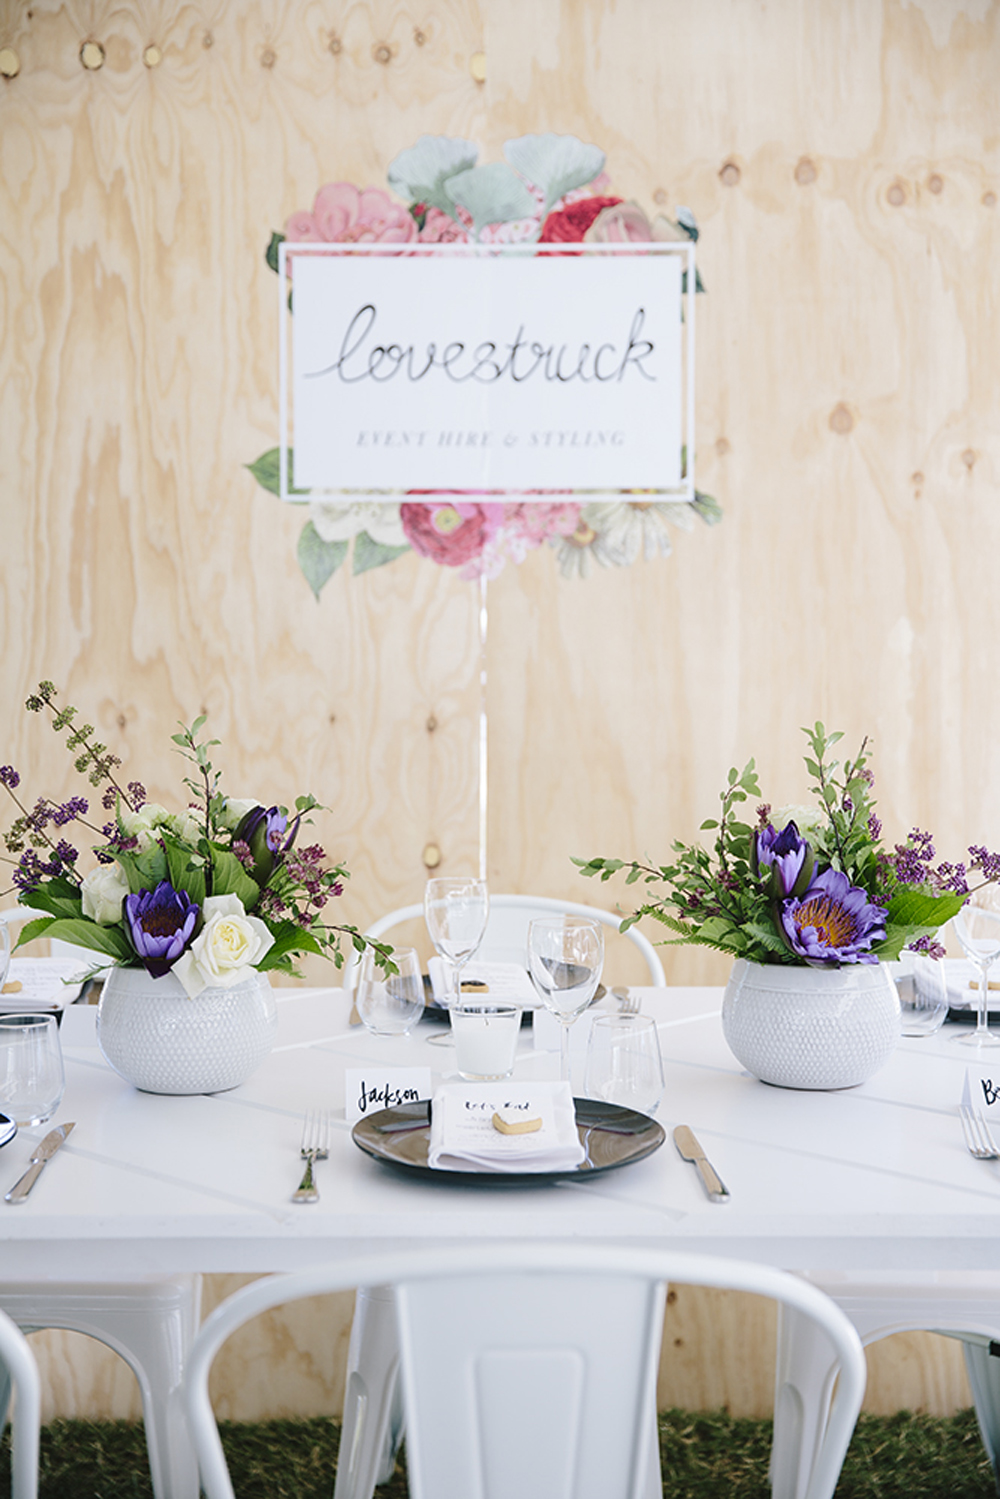 Lovestruck Weddings - White Parquetry Tables and White Tolix Chair Hire